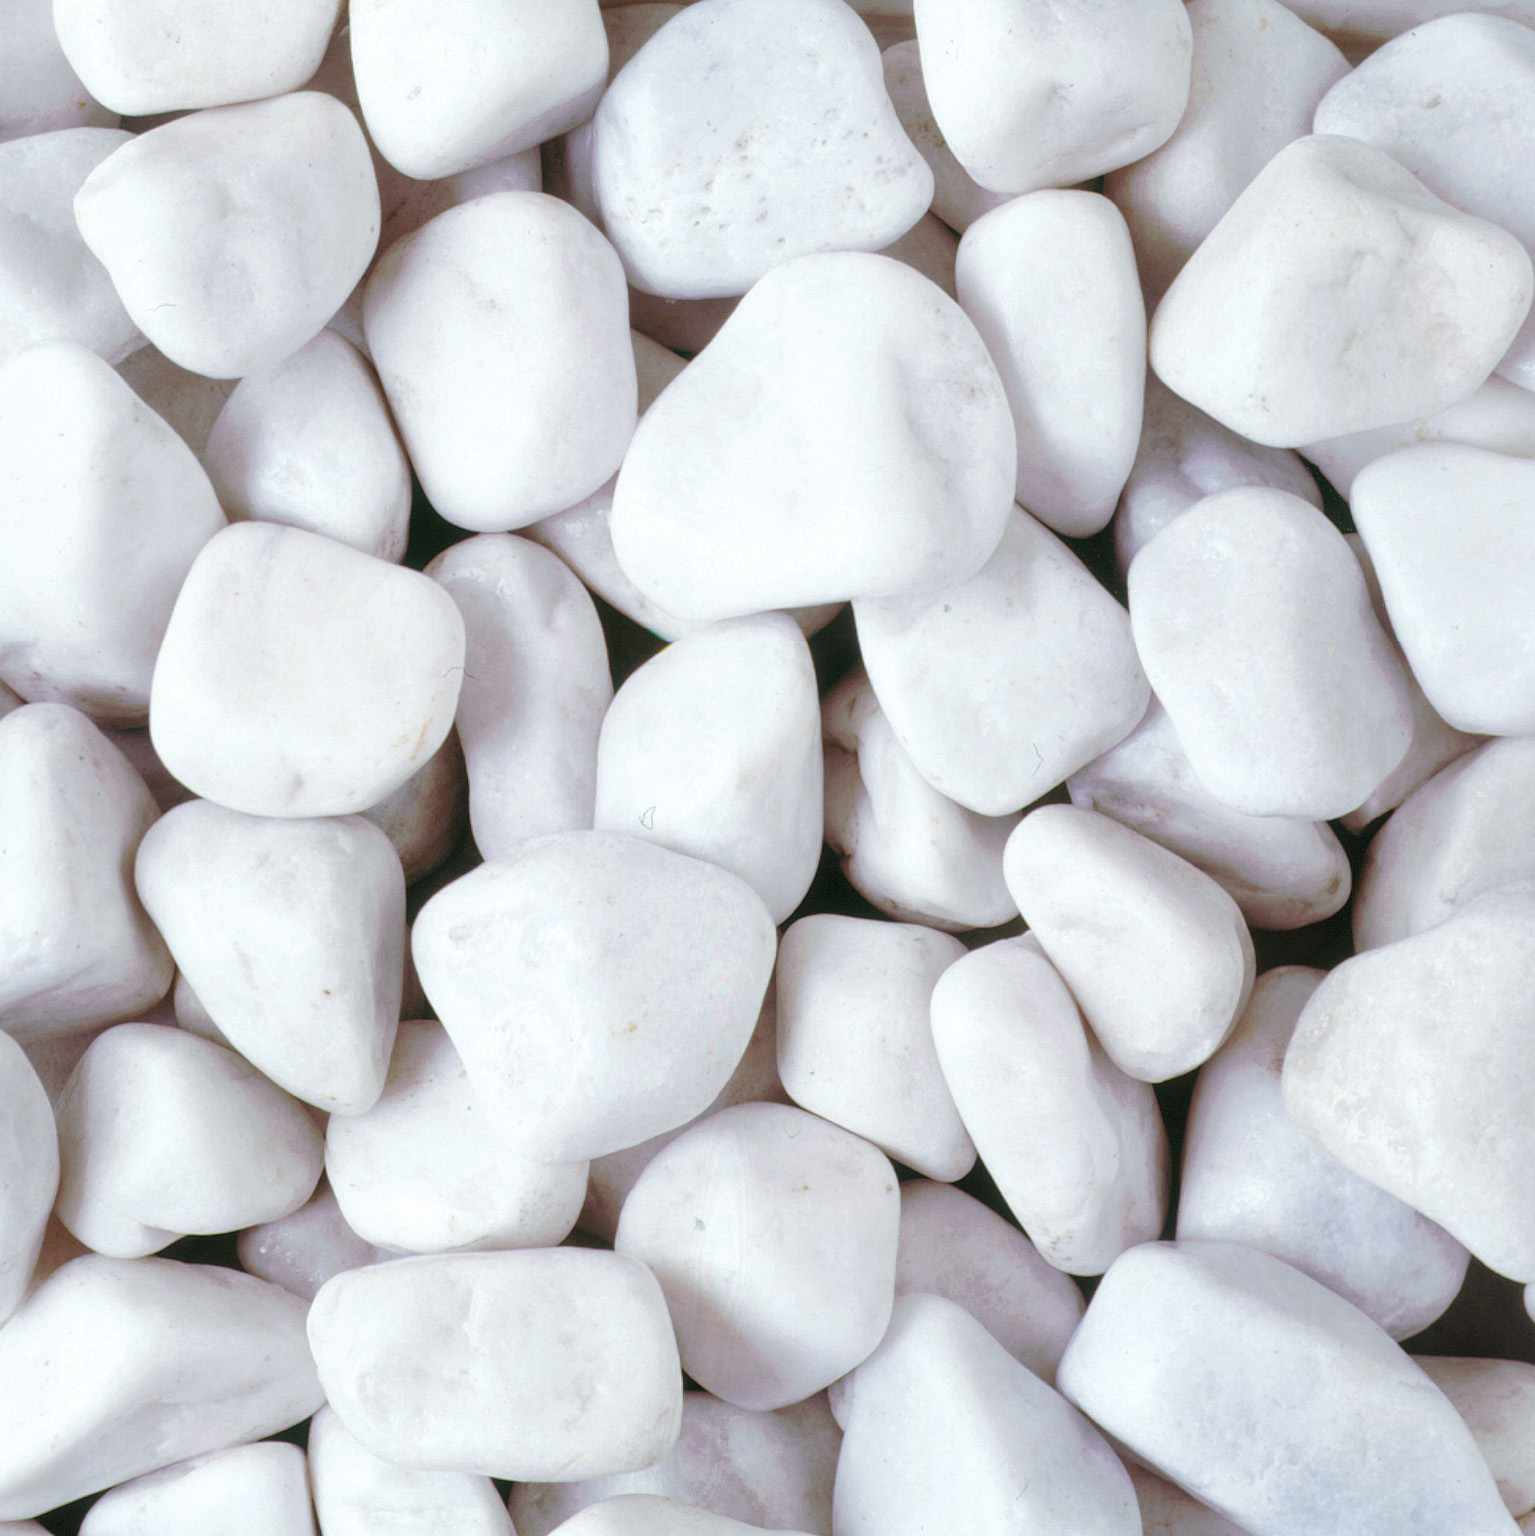 Pebbles And Stones For Gardens 20 40mm polar white pebbles buy spanish pebbles cobbles online welcome to stone garden company workwithnaturefo